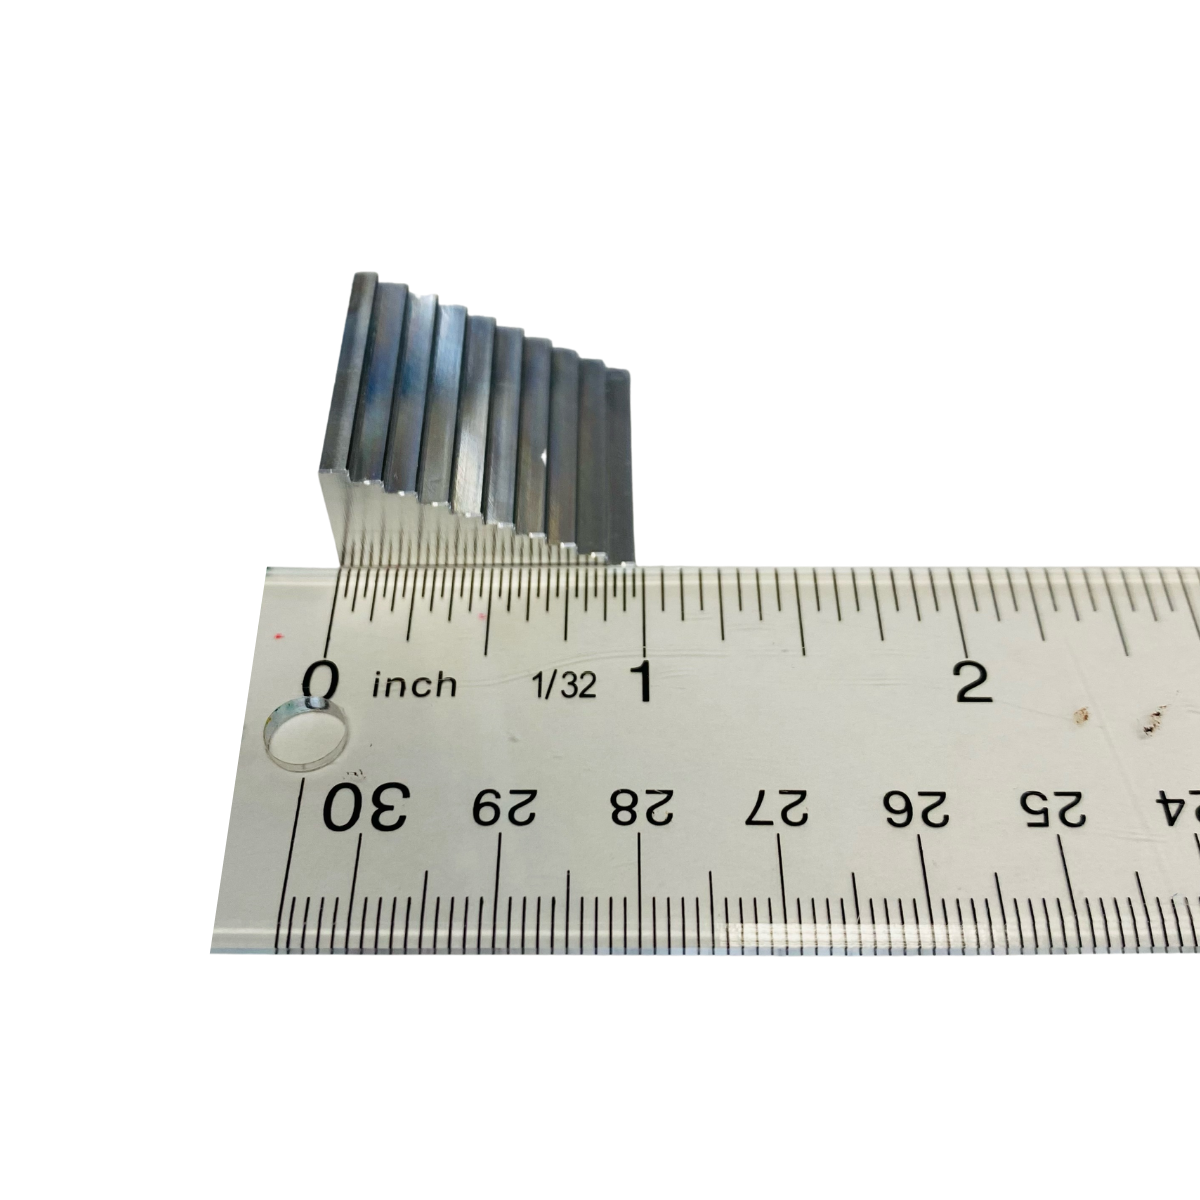 Aluminum Step Wedge (Small) for Sensors, Phosphor Storage Plates (psp) Quality Assurance Program